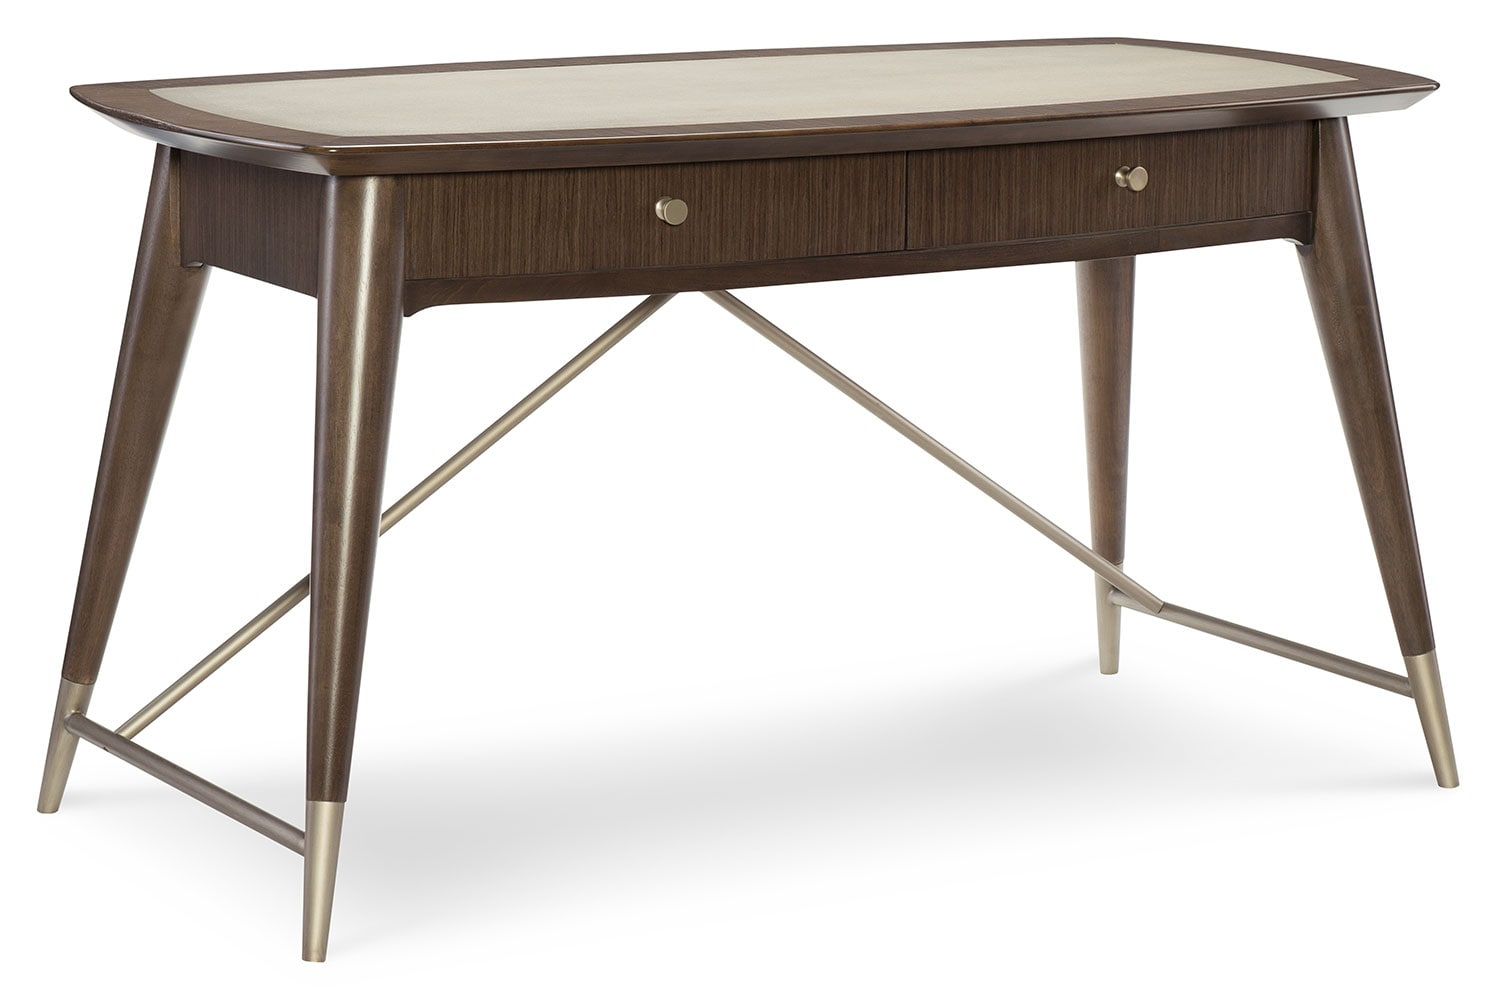 Rachael Ray Soho Desk - Ash Brown